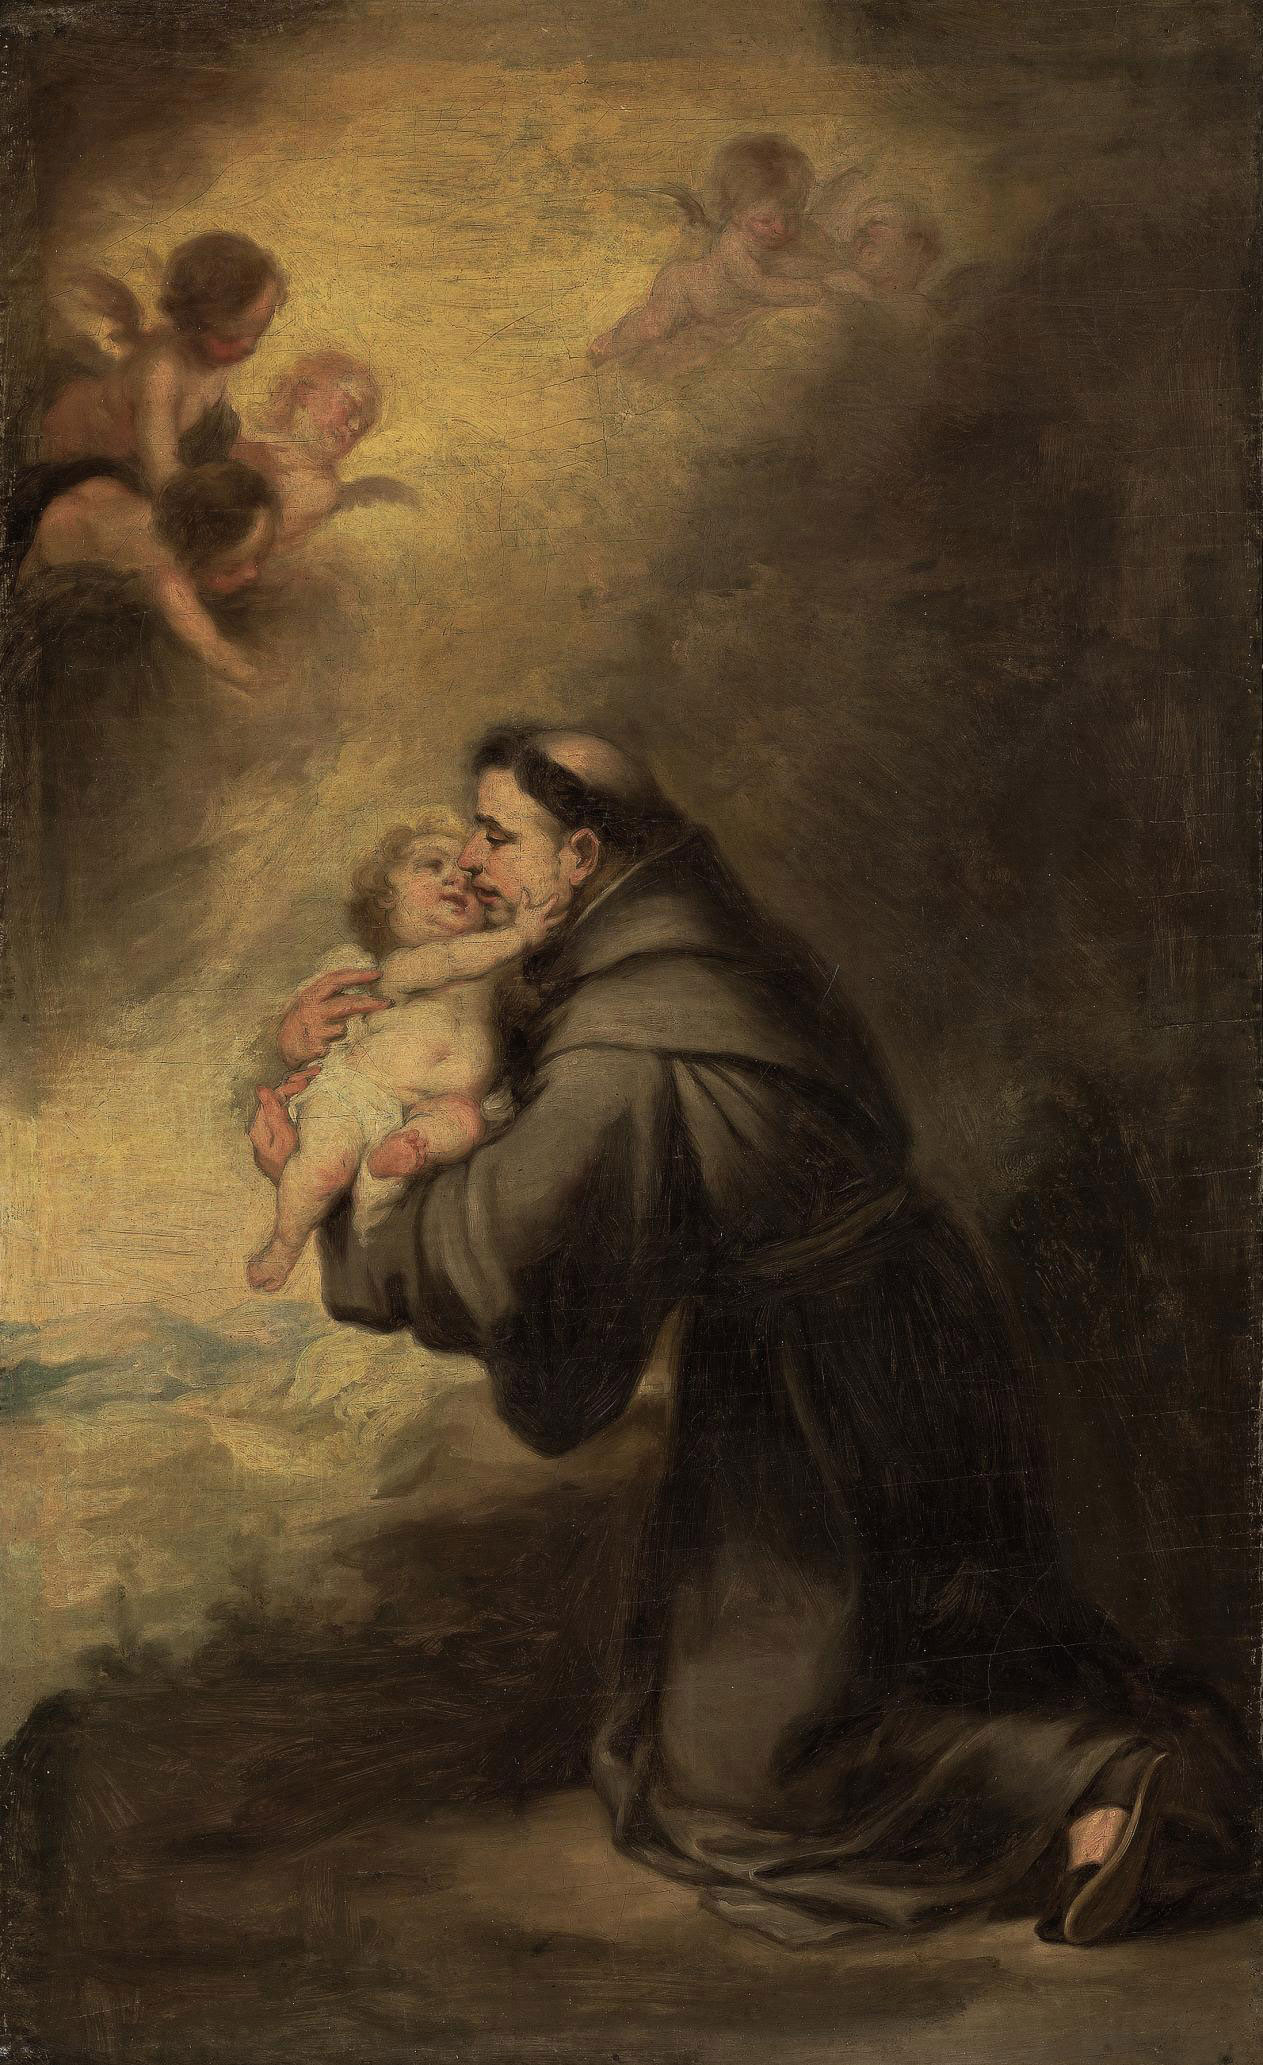 Saint Francis and the Christ Child, surrounded by putti